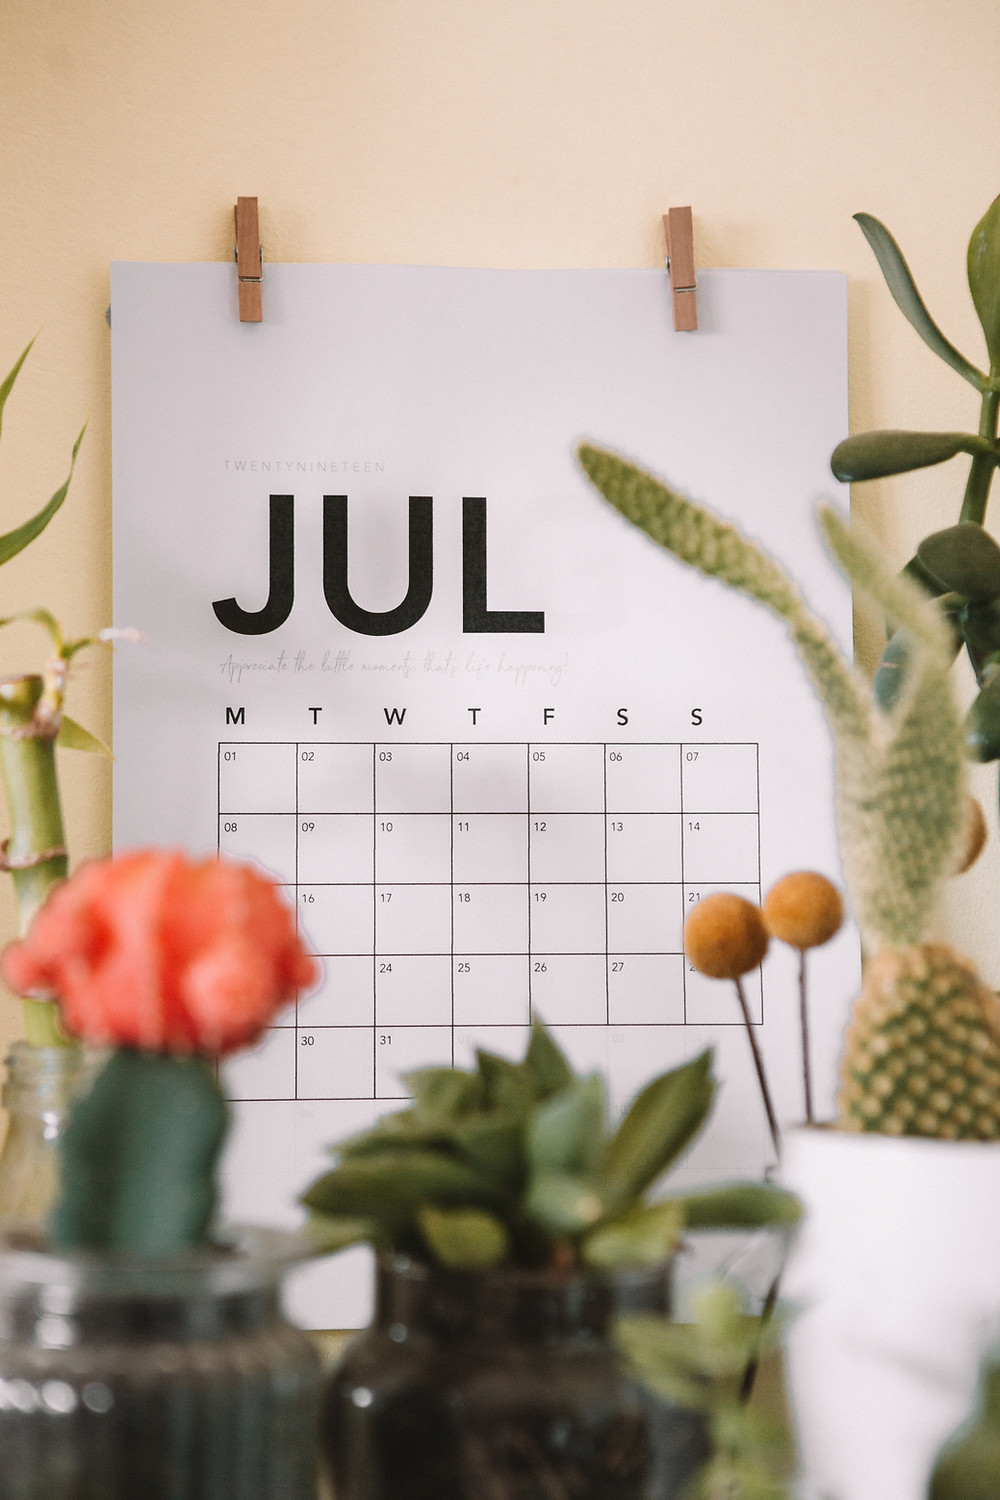 July, time for a mid-year pause